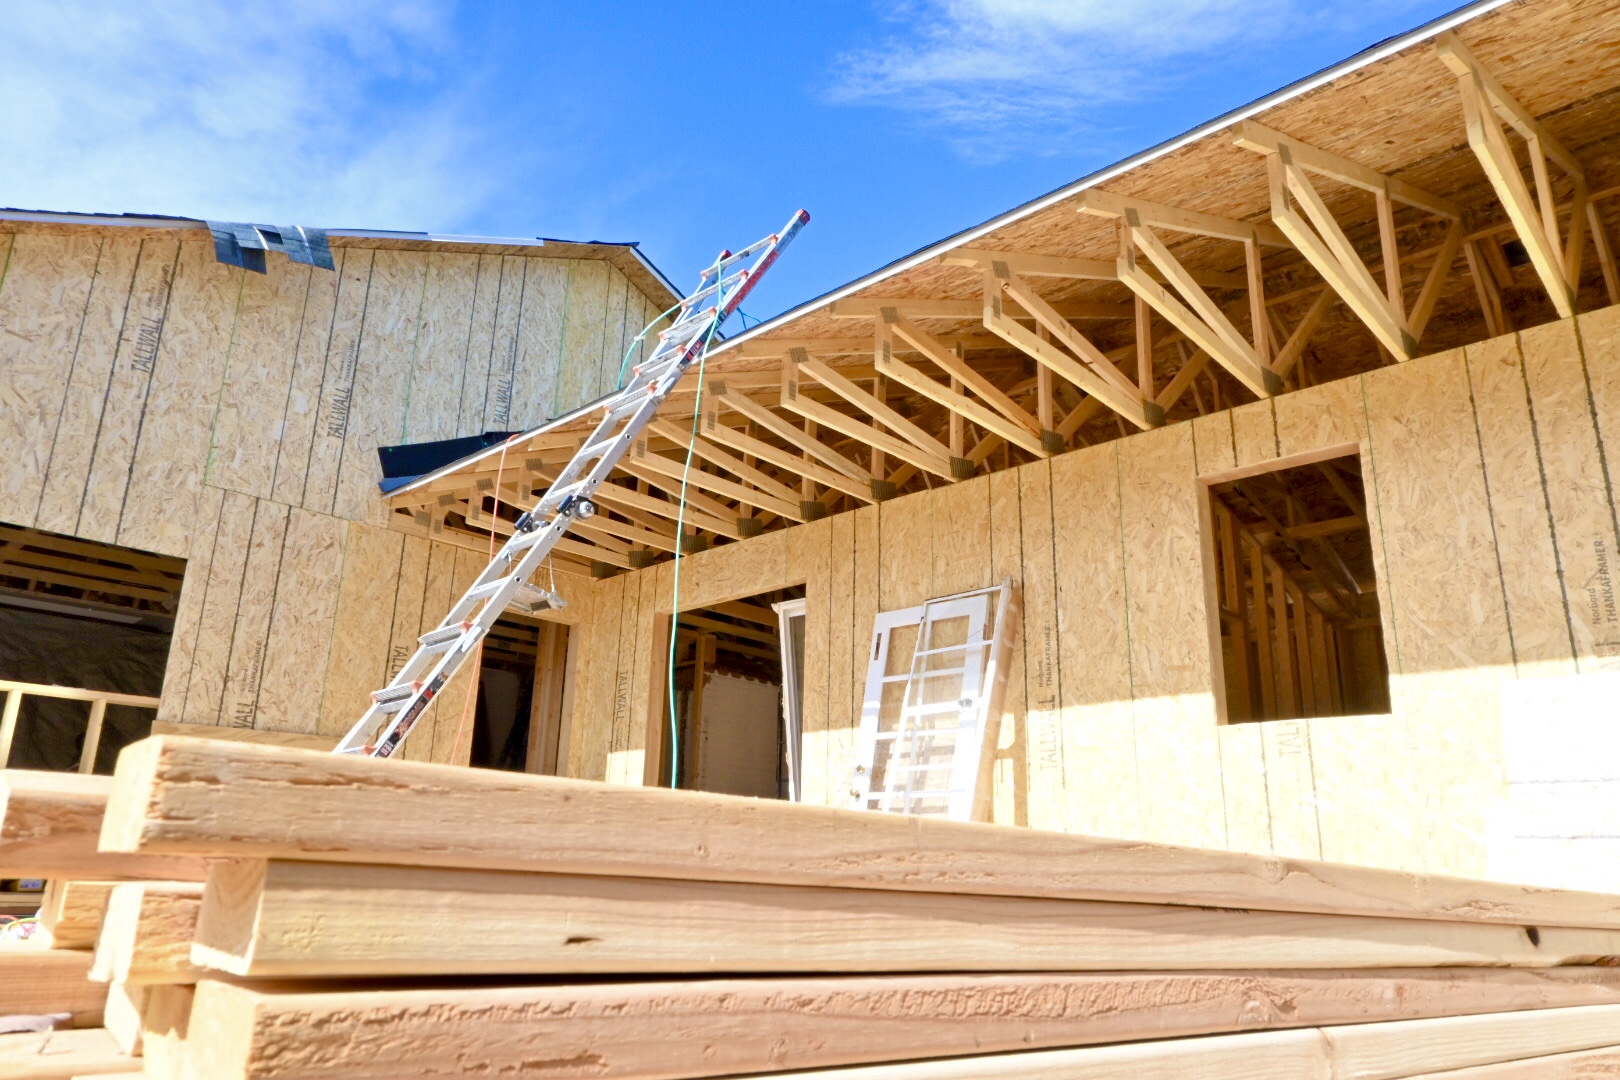 Hale Denver addition colorado project construction blue sky remodeling framing wood sustainable material new design